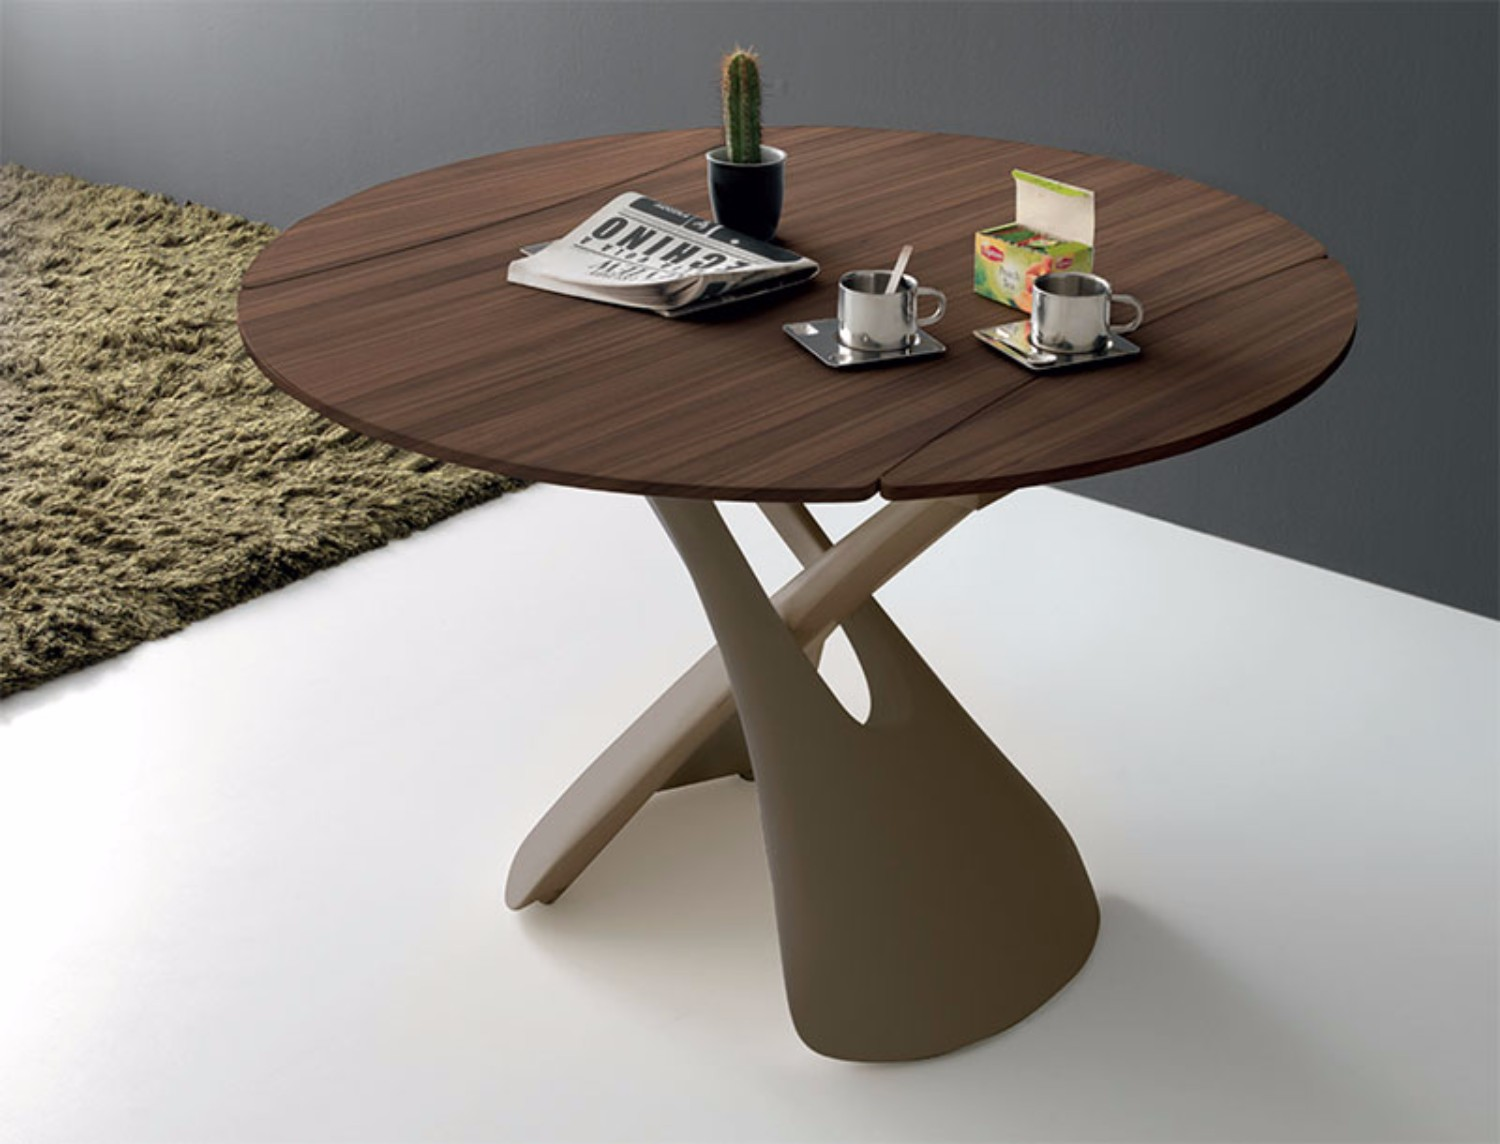 10 Inspiring Minimalist Tables coffee tables 10 Inspiring Minimalist Coffee Tables paris 8 1500